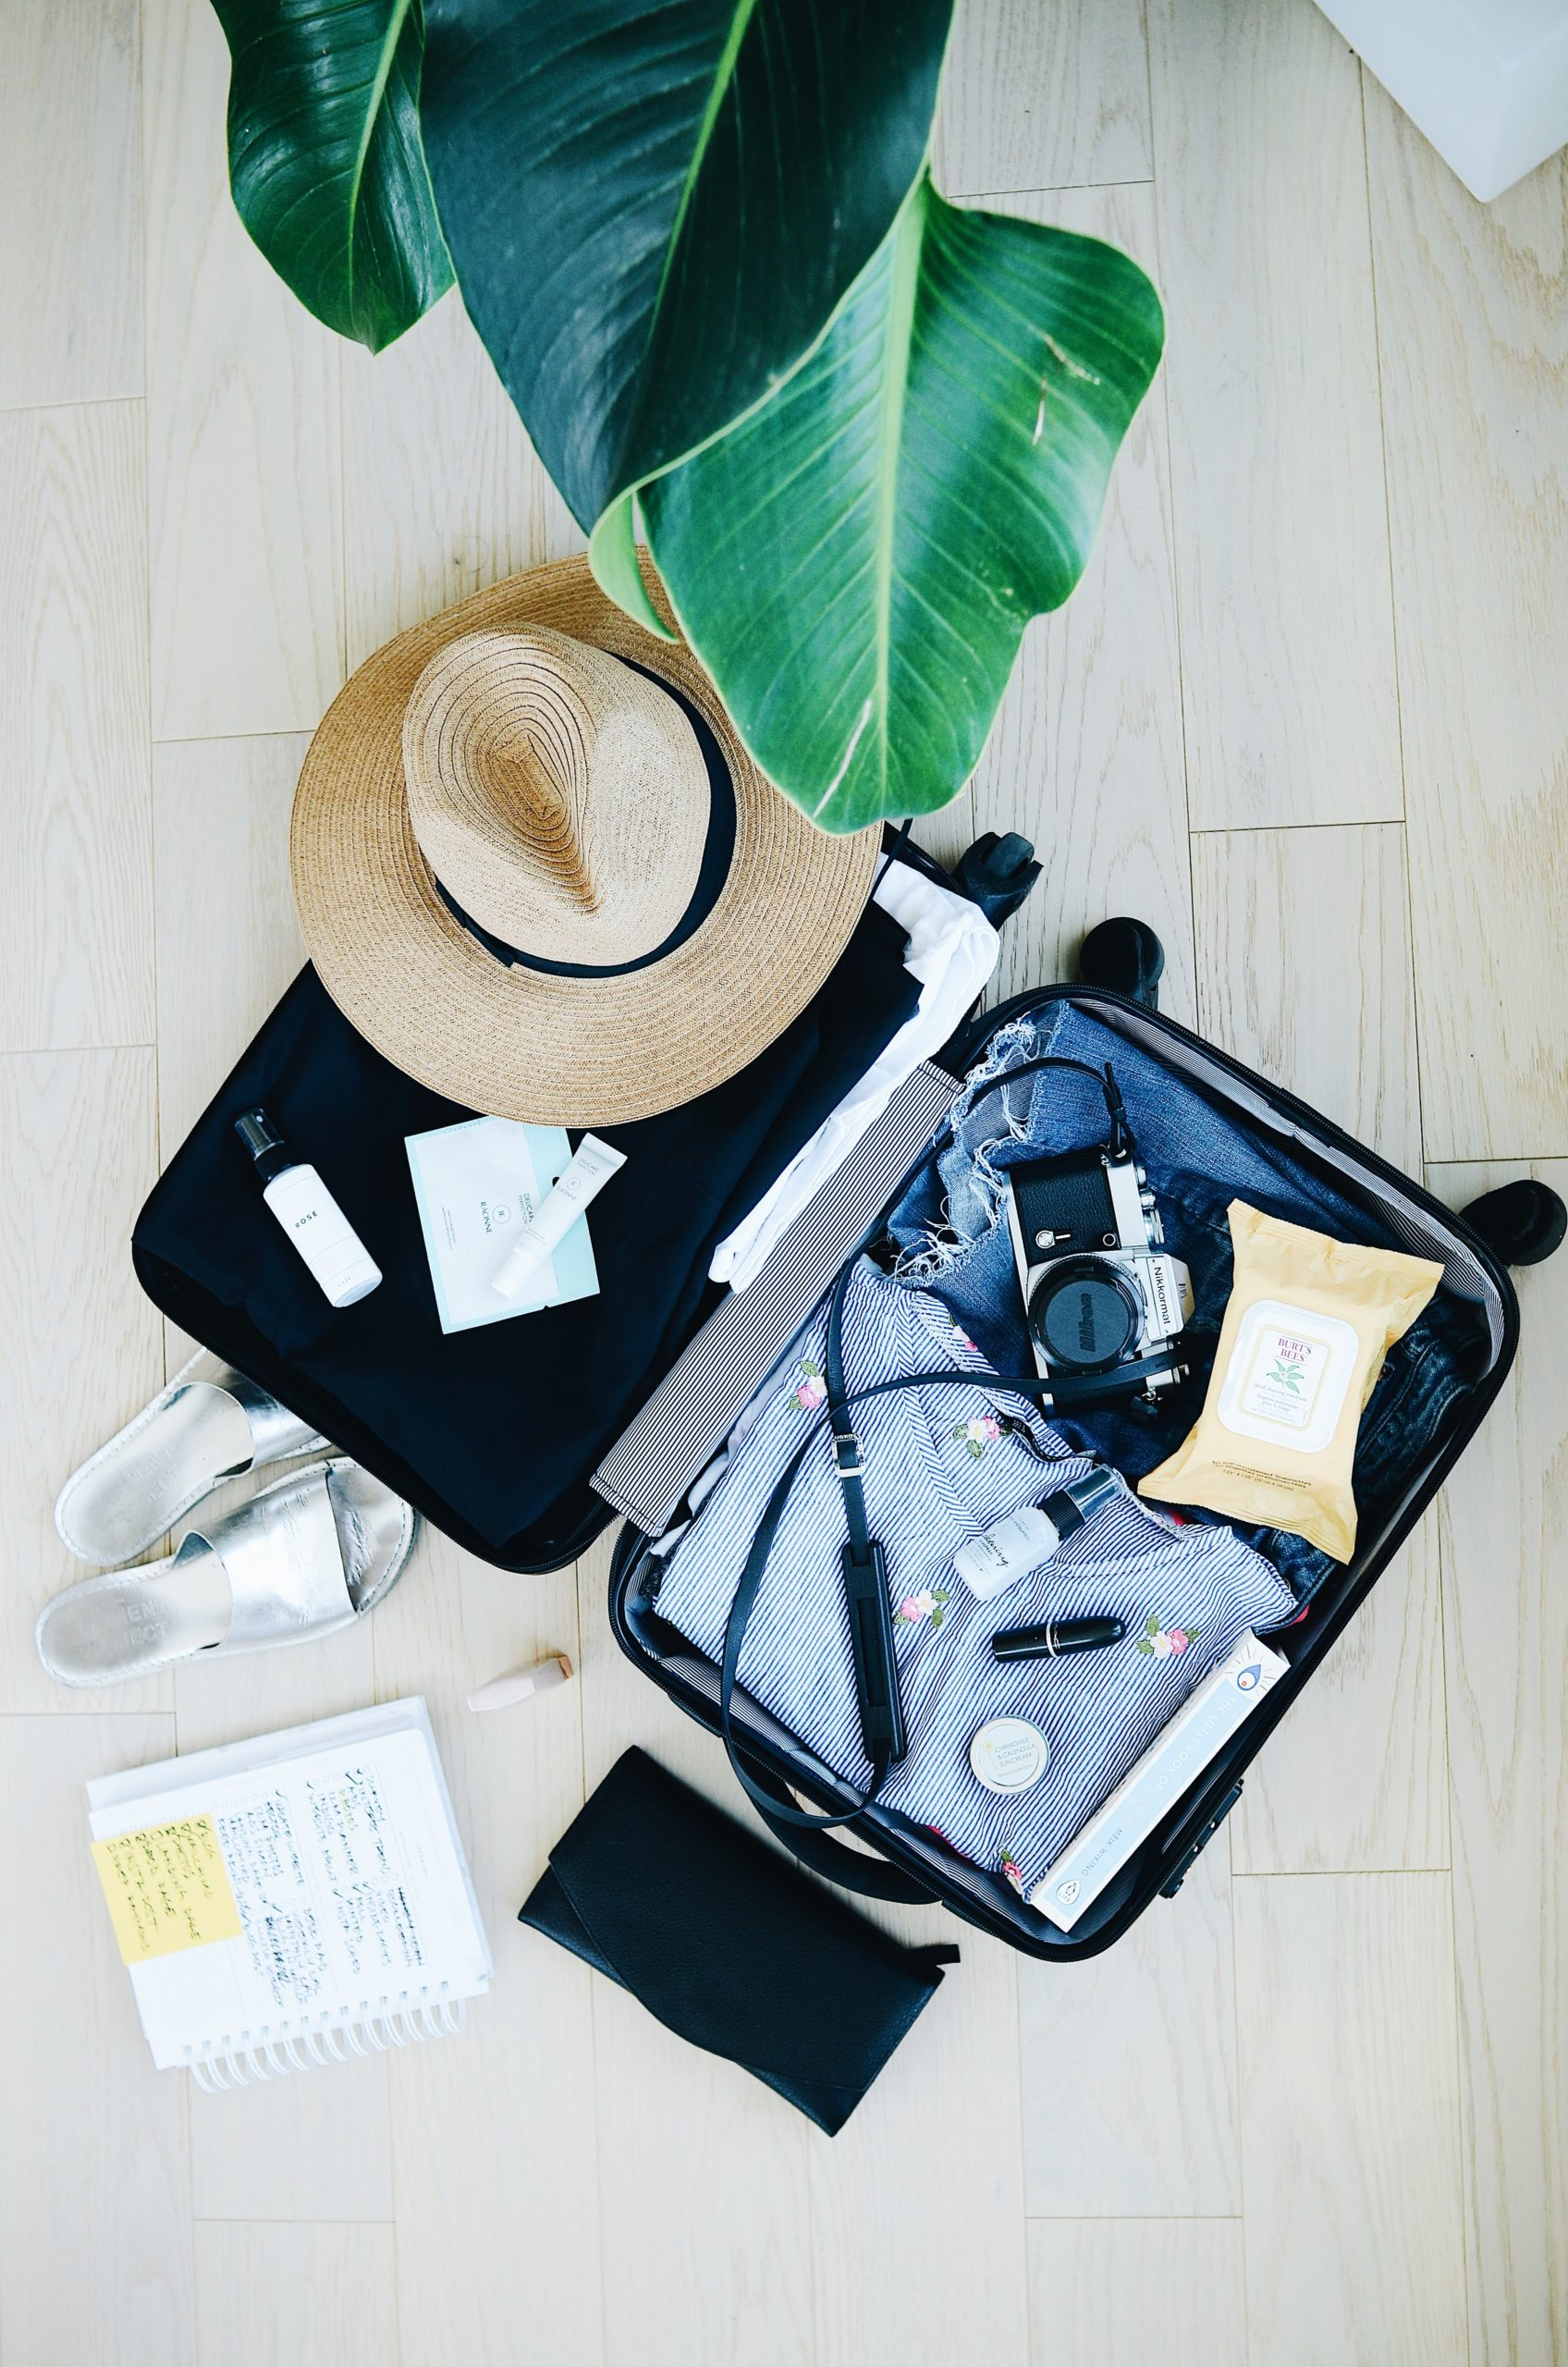 Messy suitcase that could be packed better with travel hacks.